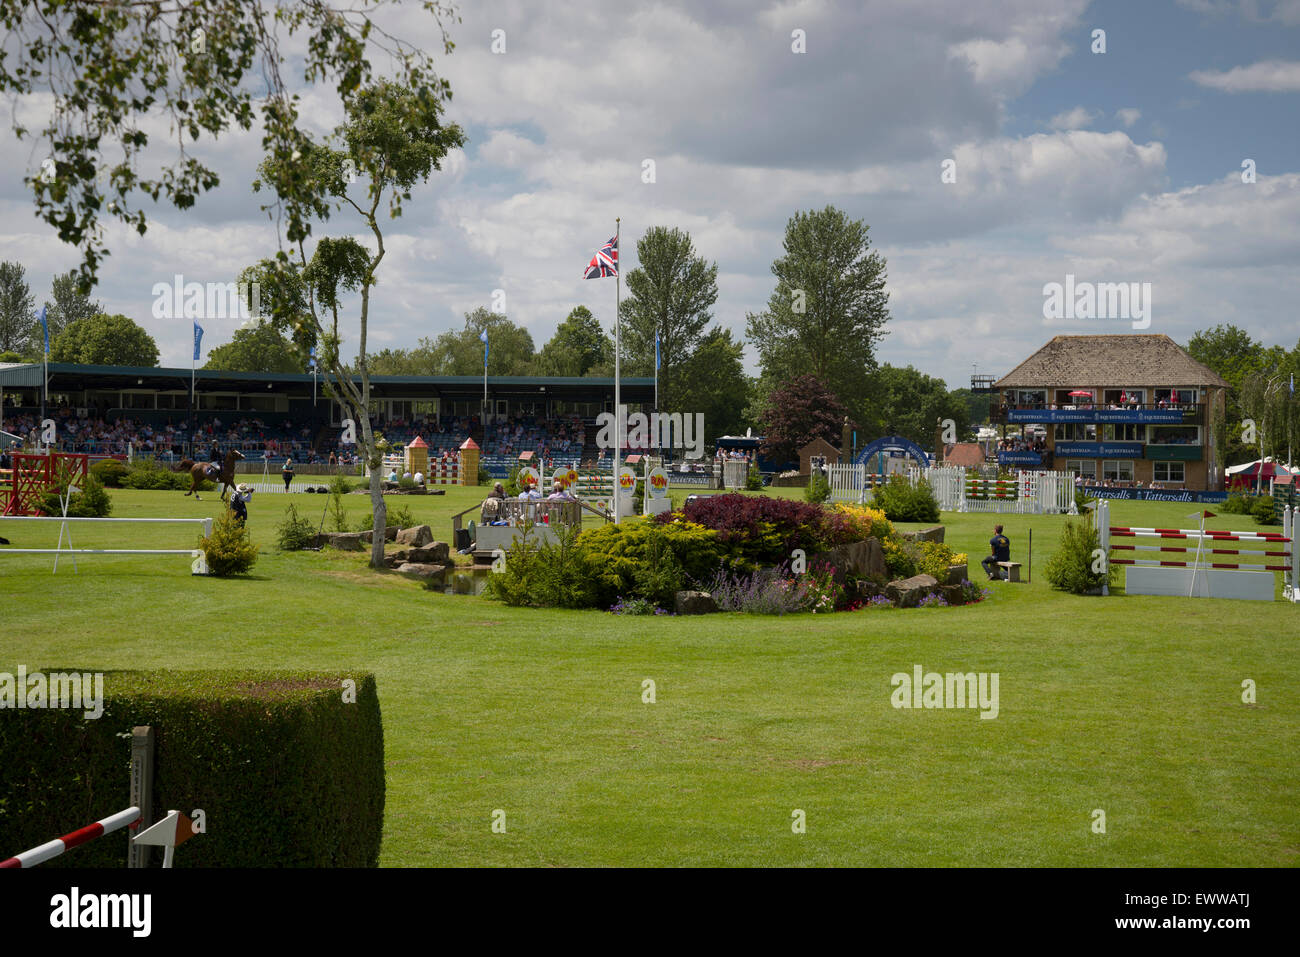 Hickstead Derby international horse jumping event in June 2015 - Stock Image